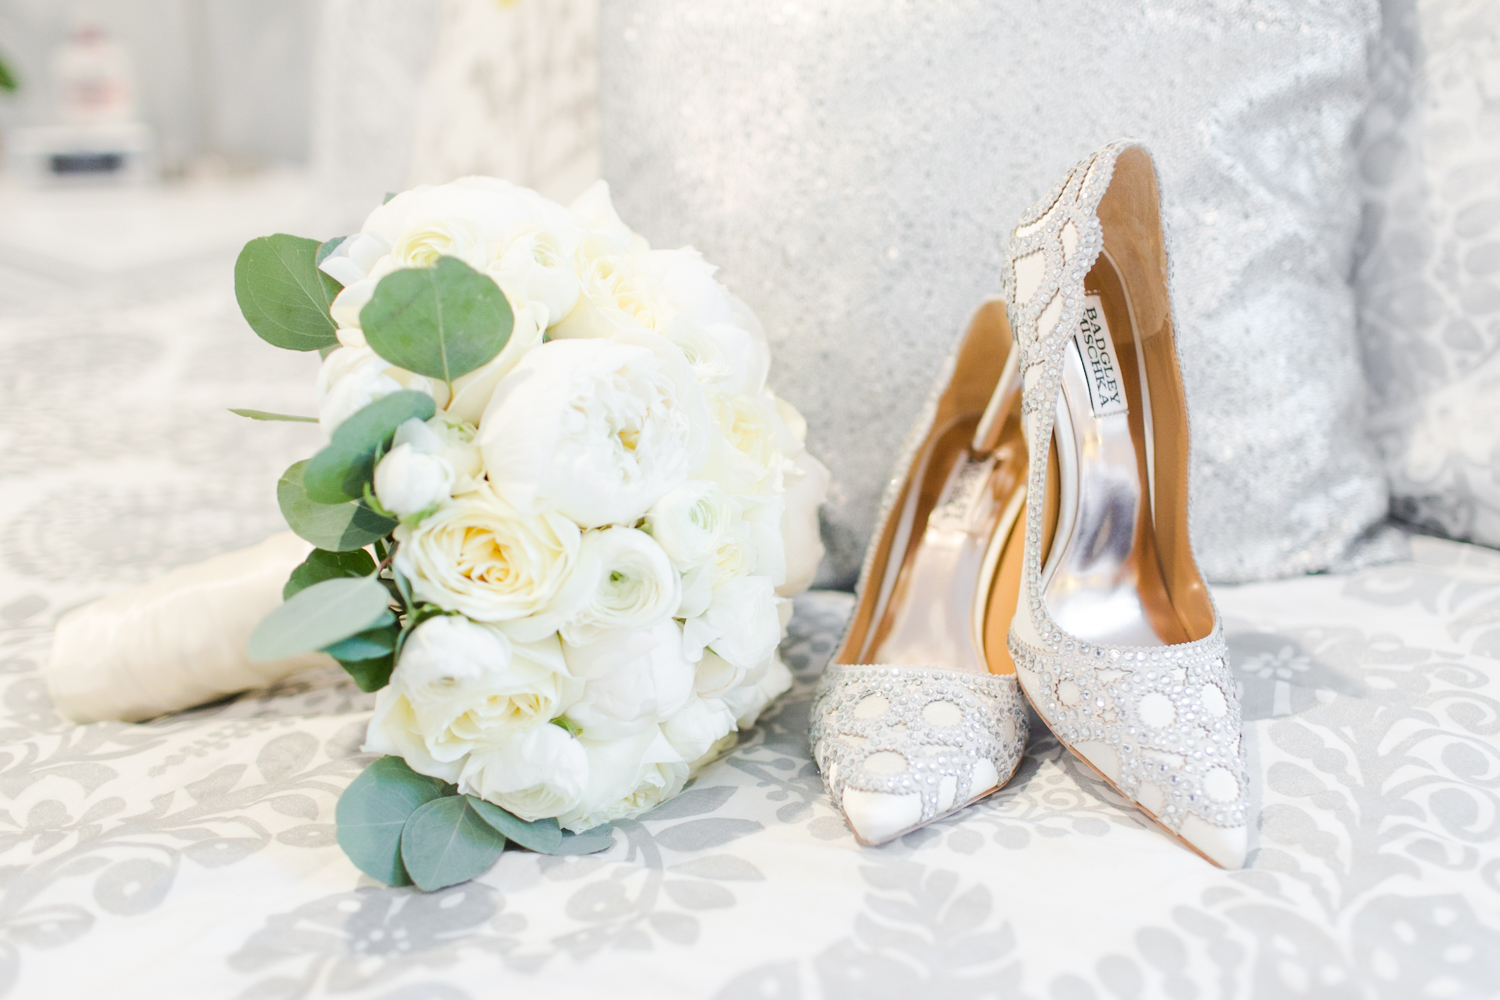 prep-wedding-details-connecticut-new-york-hawaii-engagement-photographer-shaina-lee-photography-photo-1.jpg